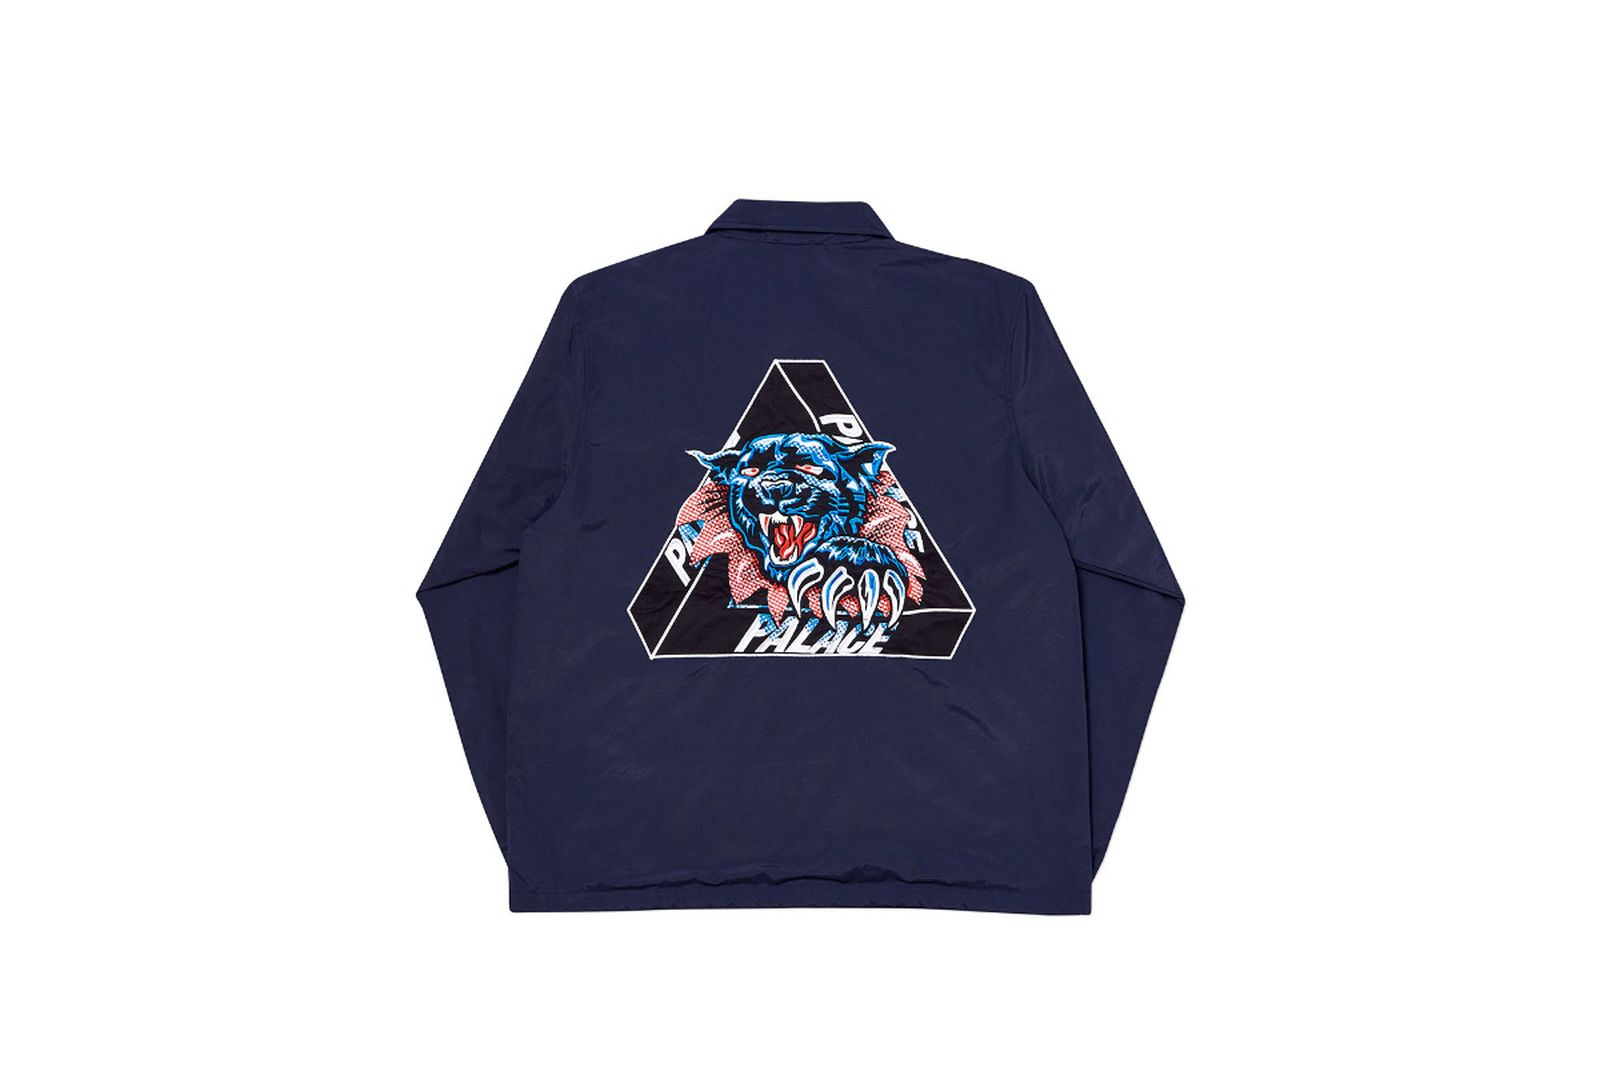 Palace 2019 Autumn Jacket Ripped Coach navy back fw19